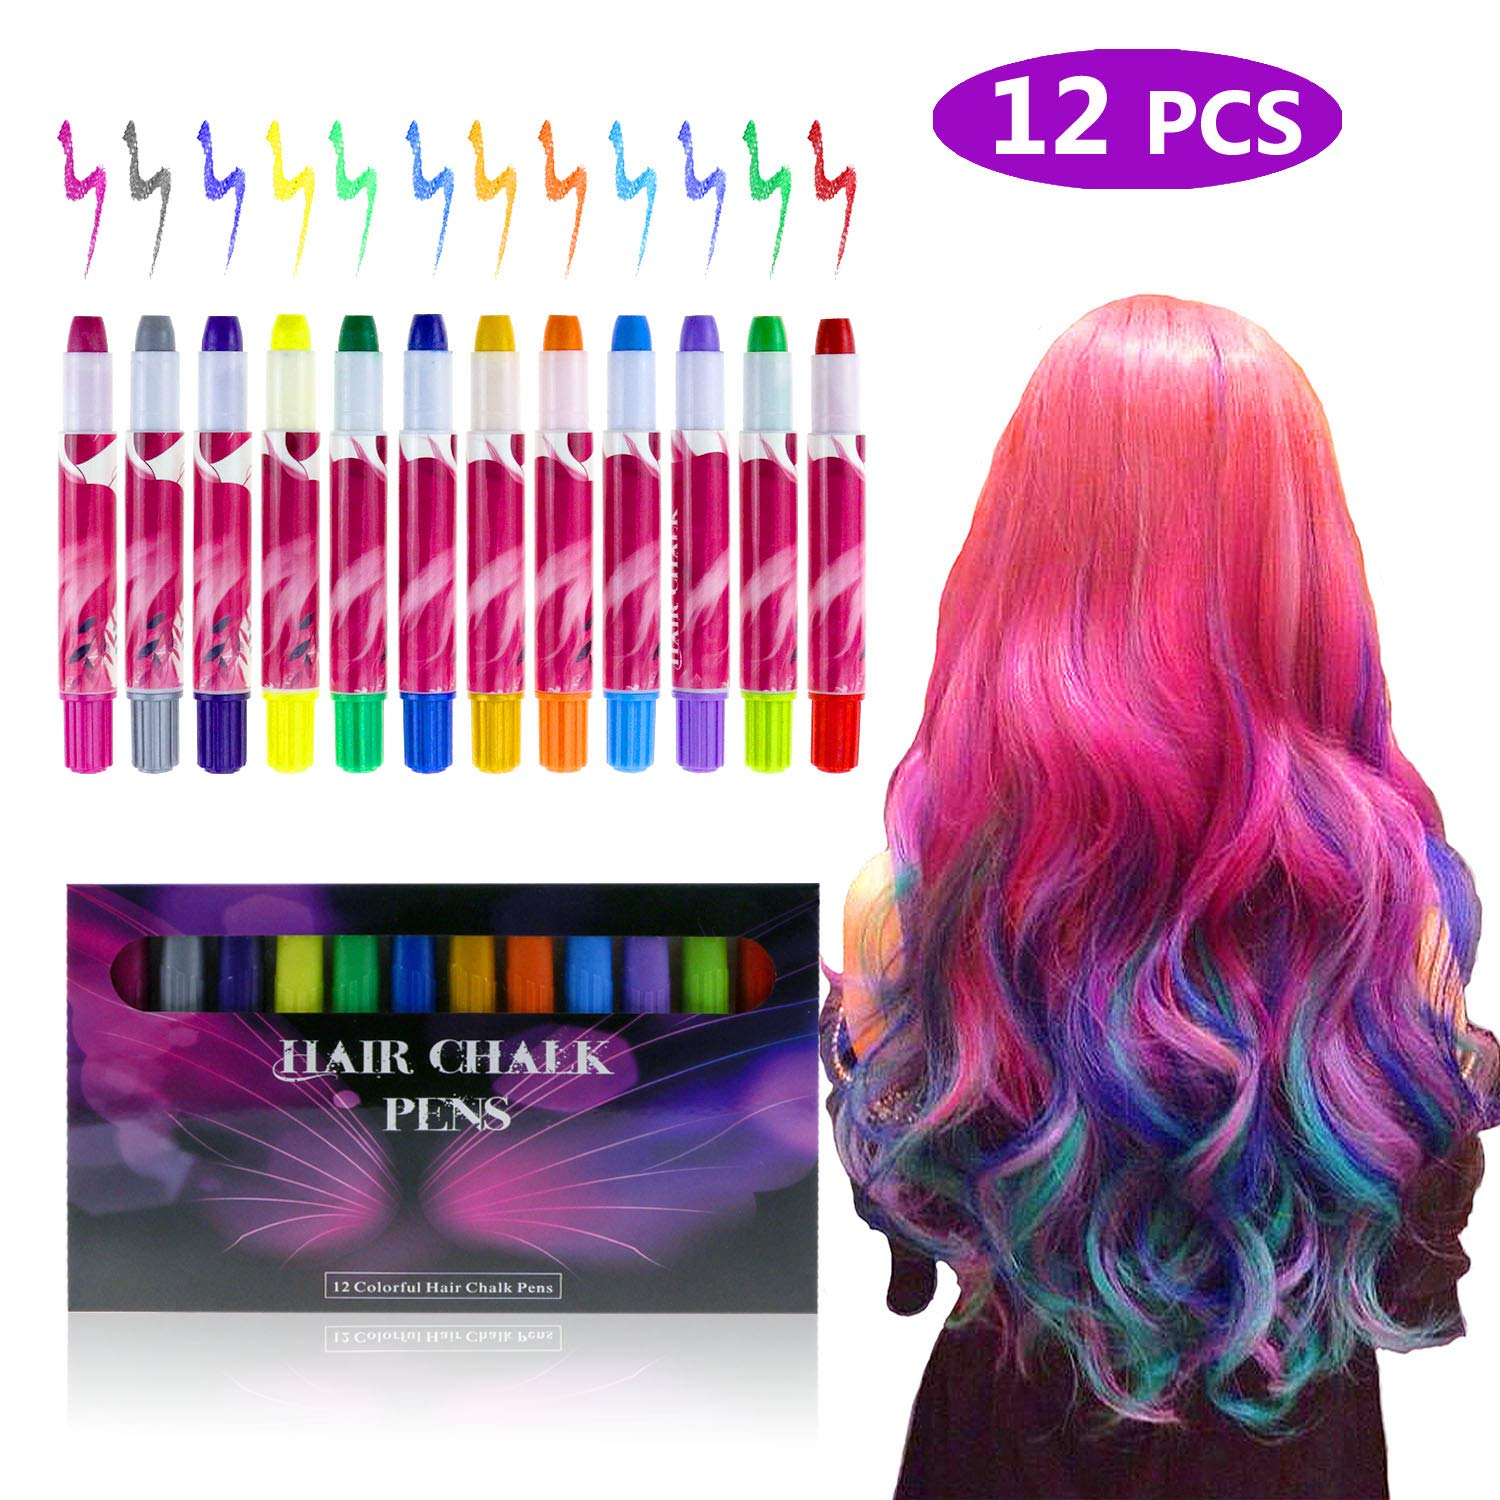 Zexuan 12 Colors Hair Chalk Pens Set Non-Toxic Temporary Washable Hair Dye Colors for Girls & Boys, for Party, Cosplay, Halloween, Christmas,Washes Out Easily and Last Longer With No Mess Zexuan Direct